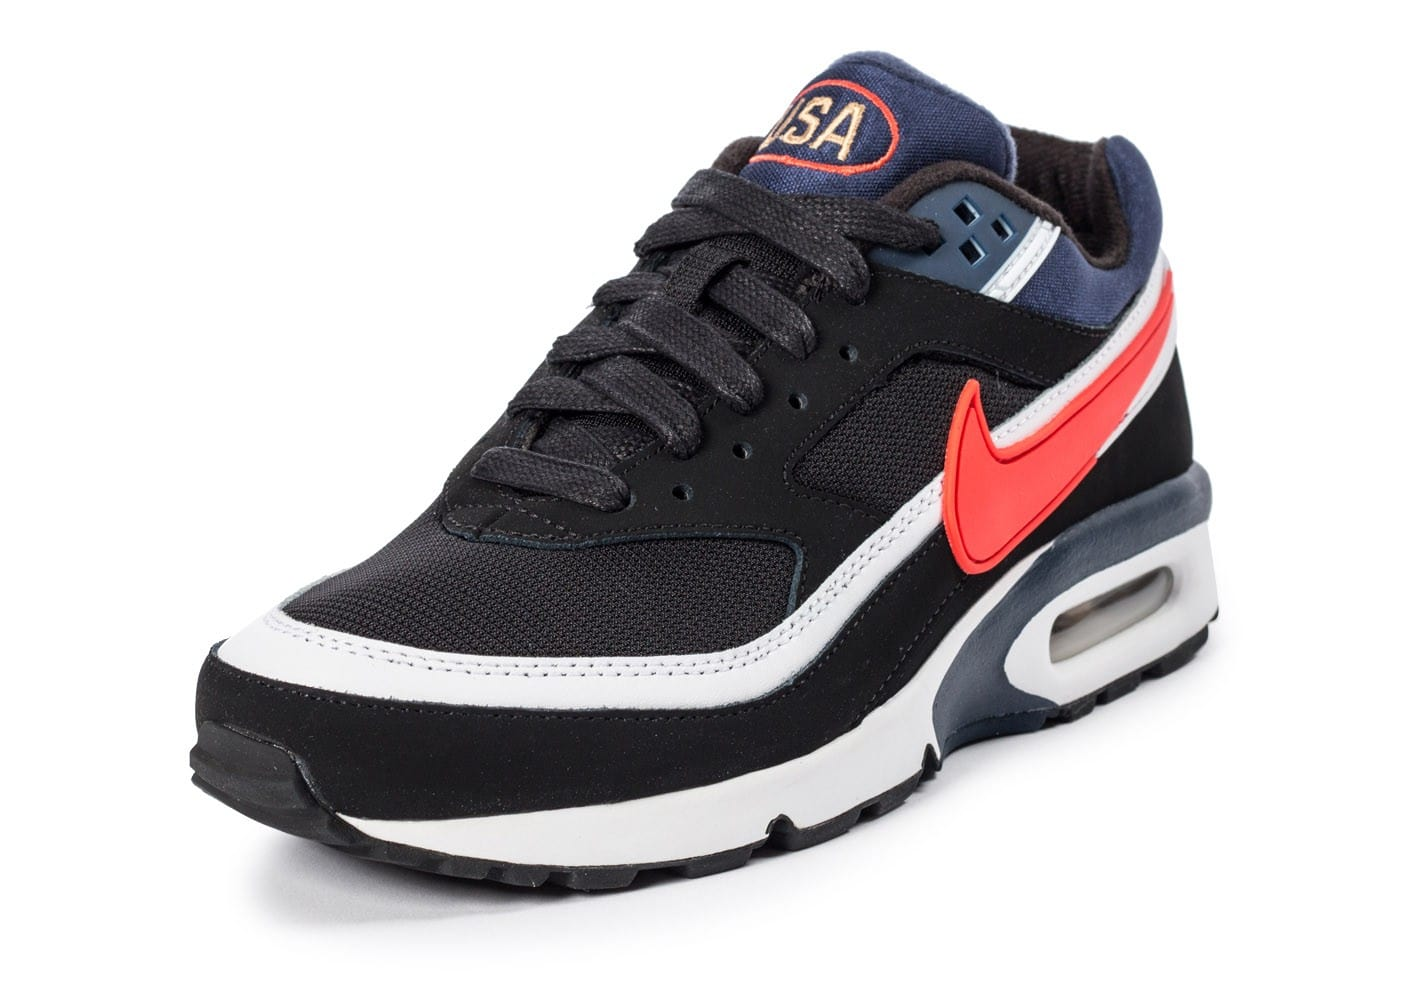 Chaussures Nike Air Max BW Olympic USA vue avant